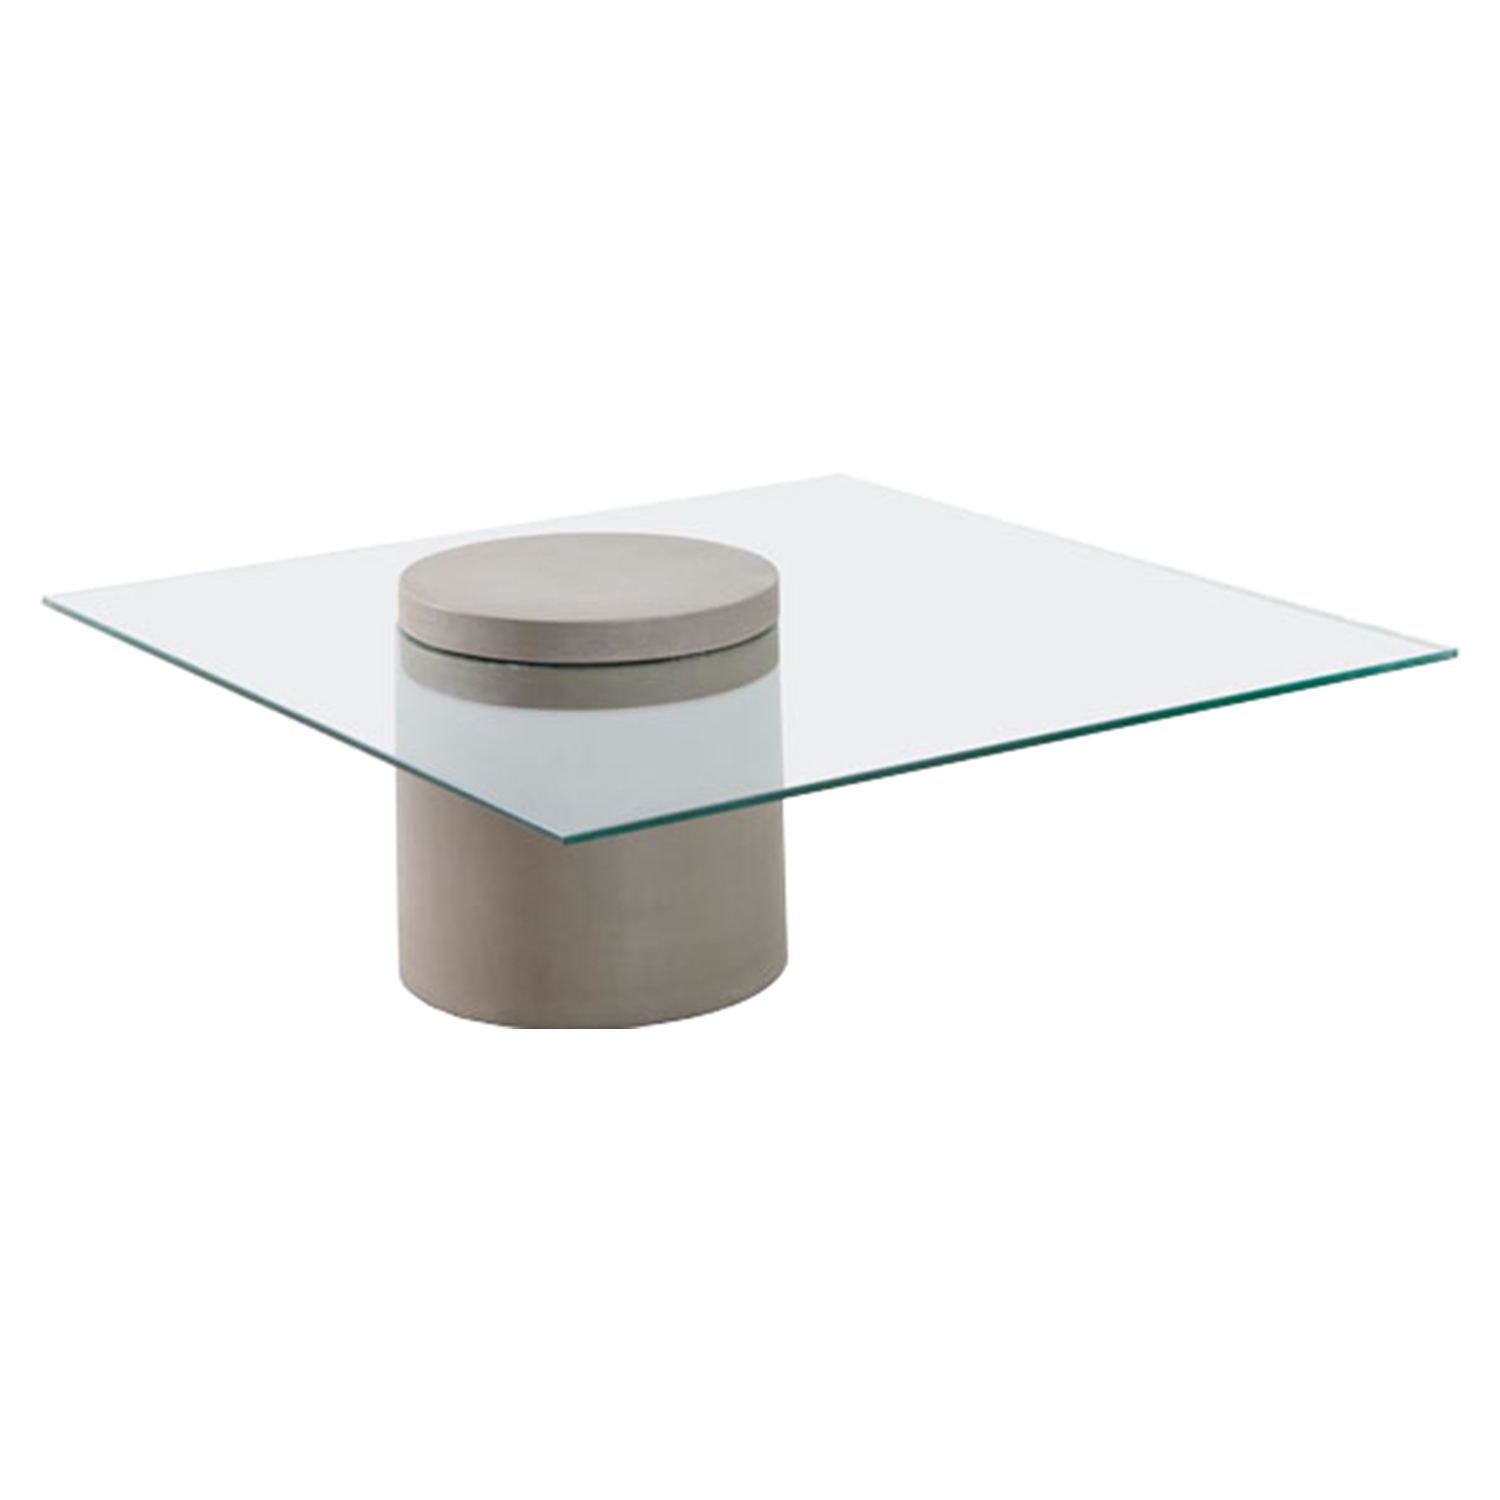 Monolith Coffee Table - Cement